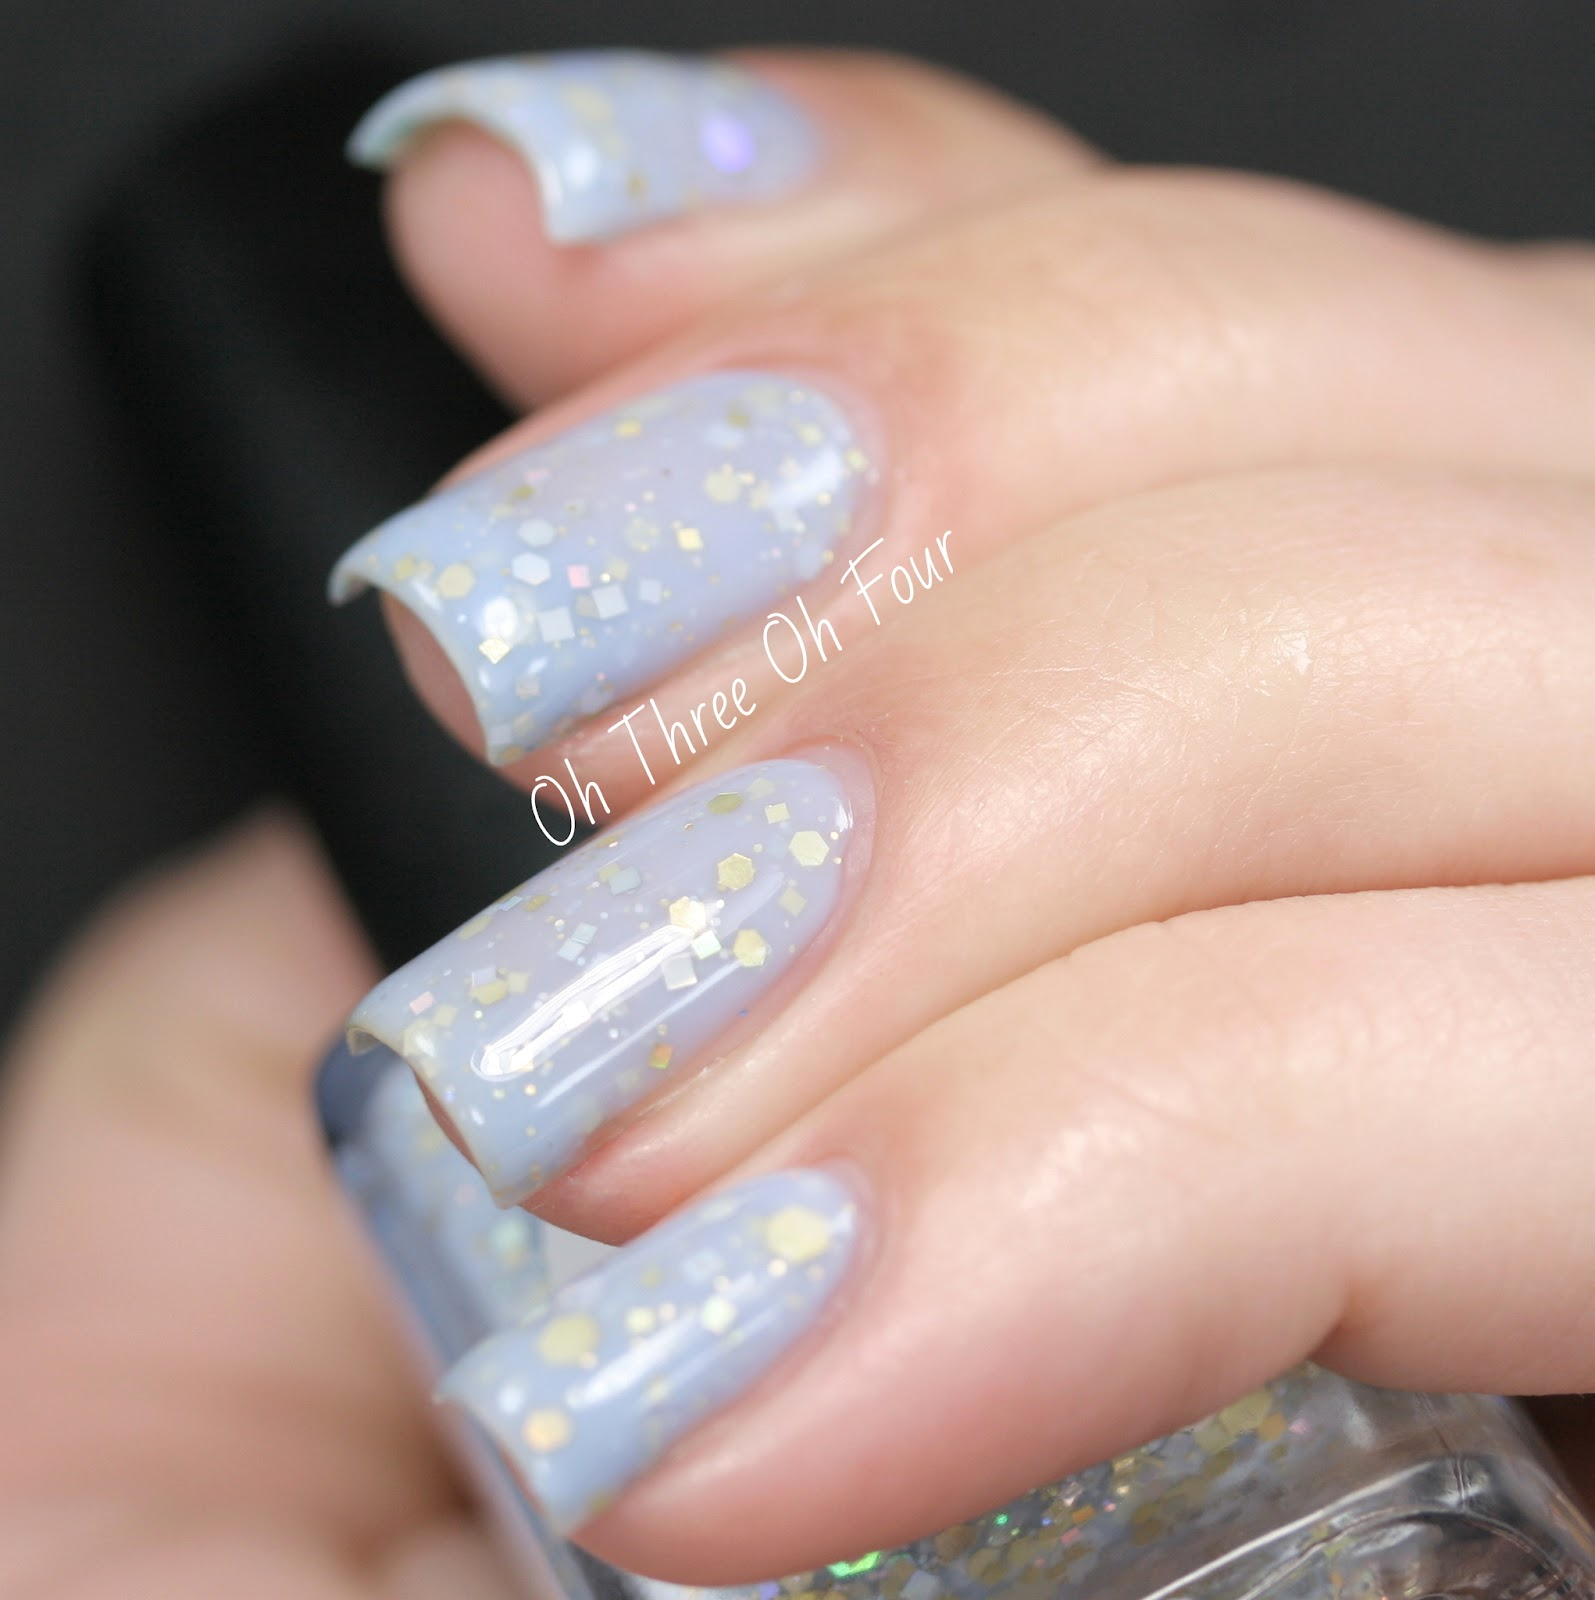 Rain City Lacquer Moonlit Waves swatch